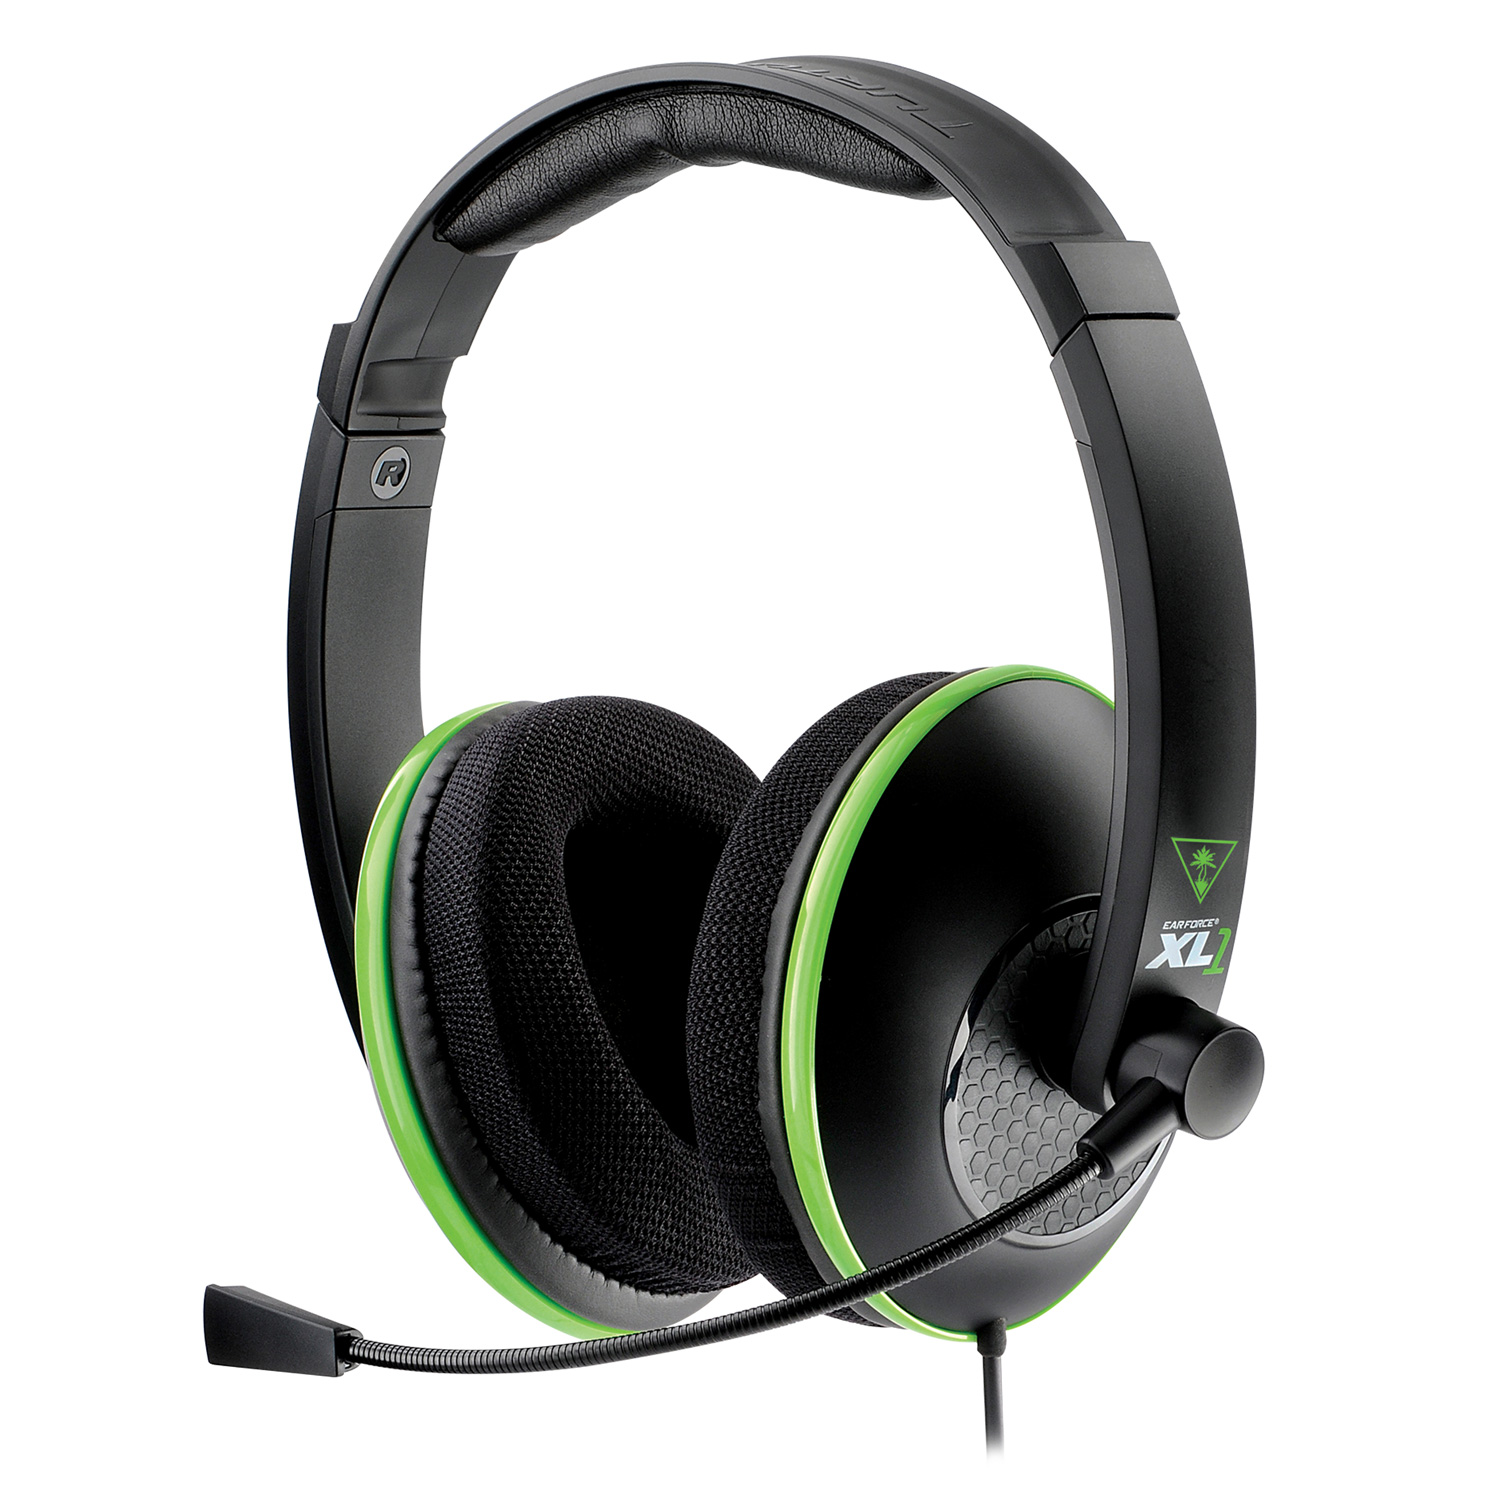 turtle beach ear force xl1 microsoft xbox 360 accessoires xbox 360 turtle beach sur ldlc. Black Bedroom Furniture Sets. Home Design Ideas